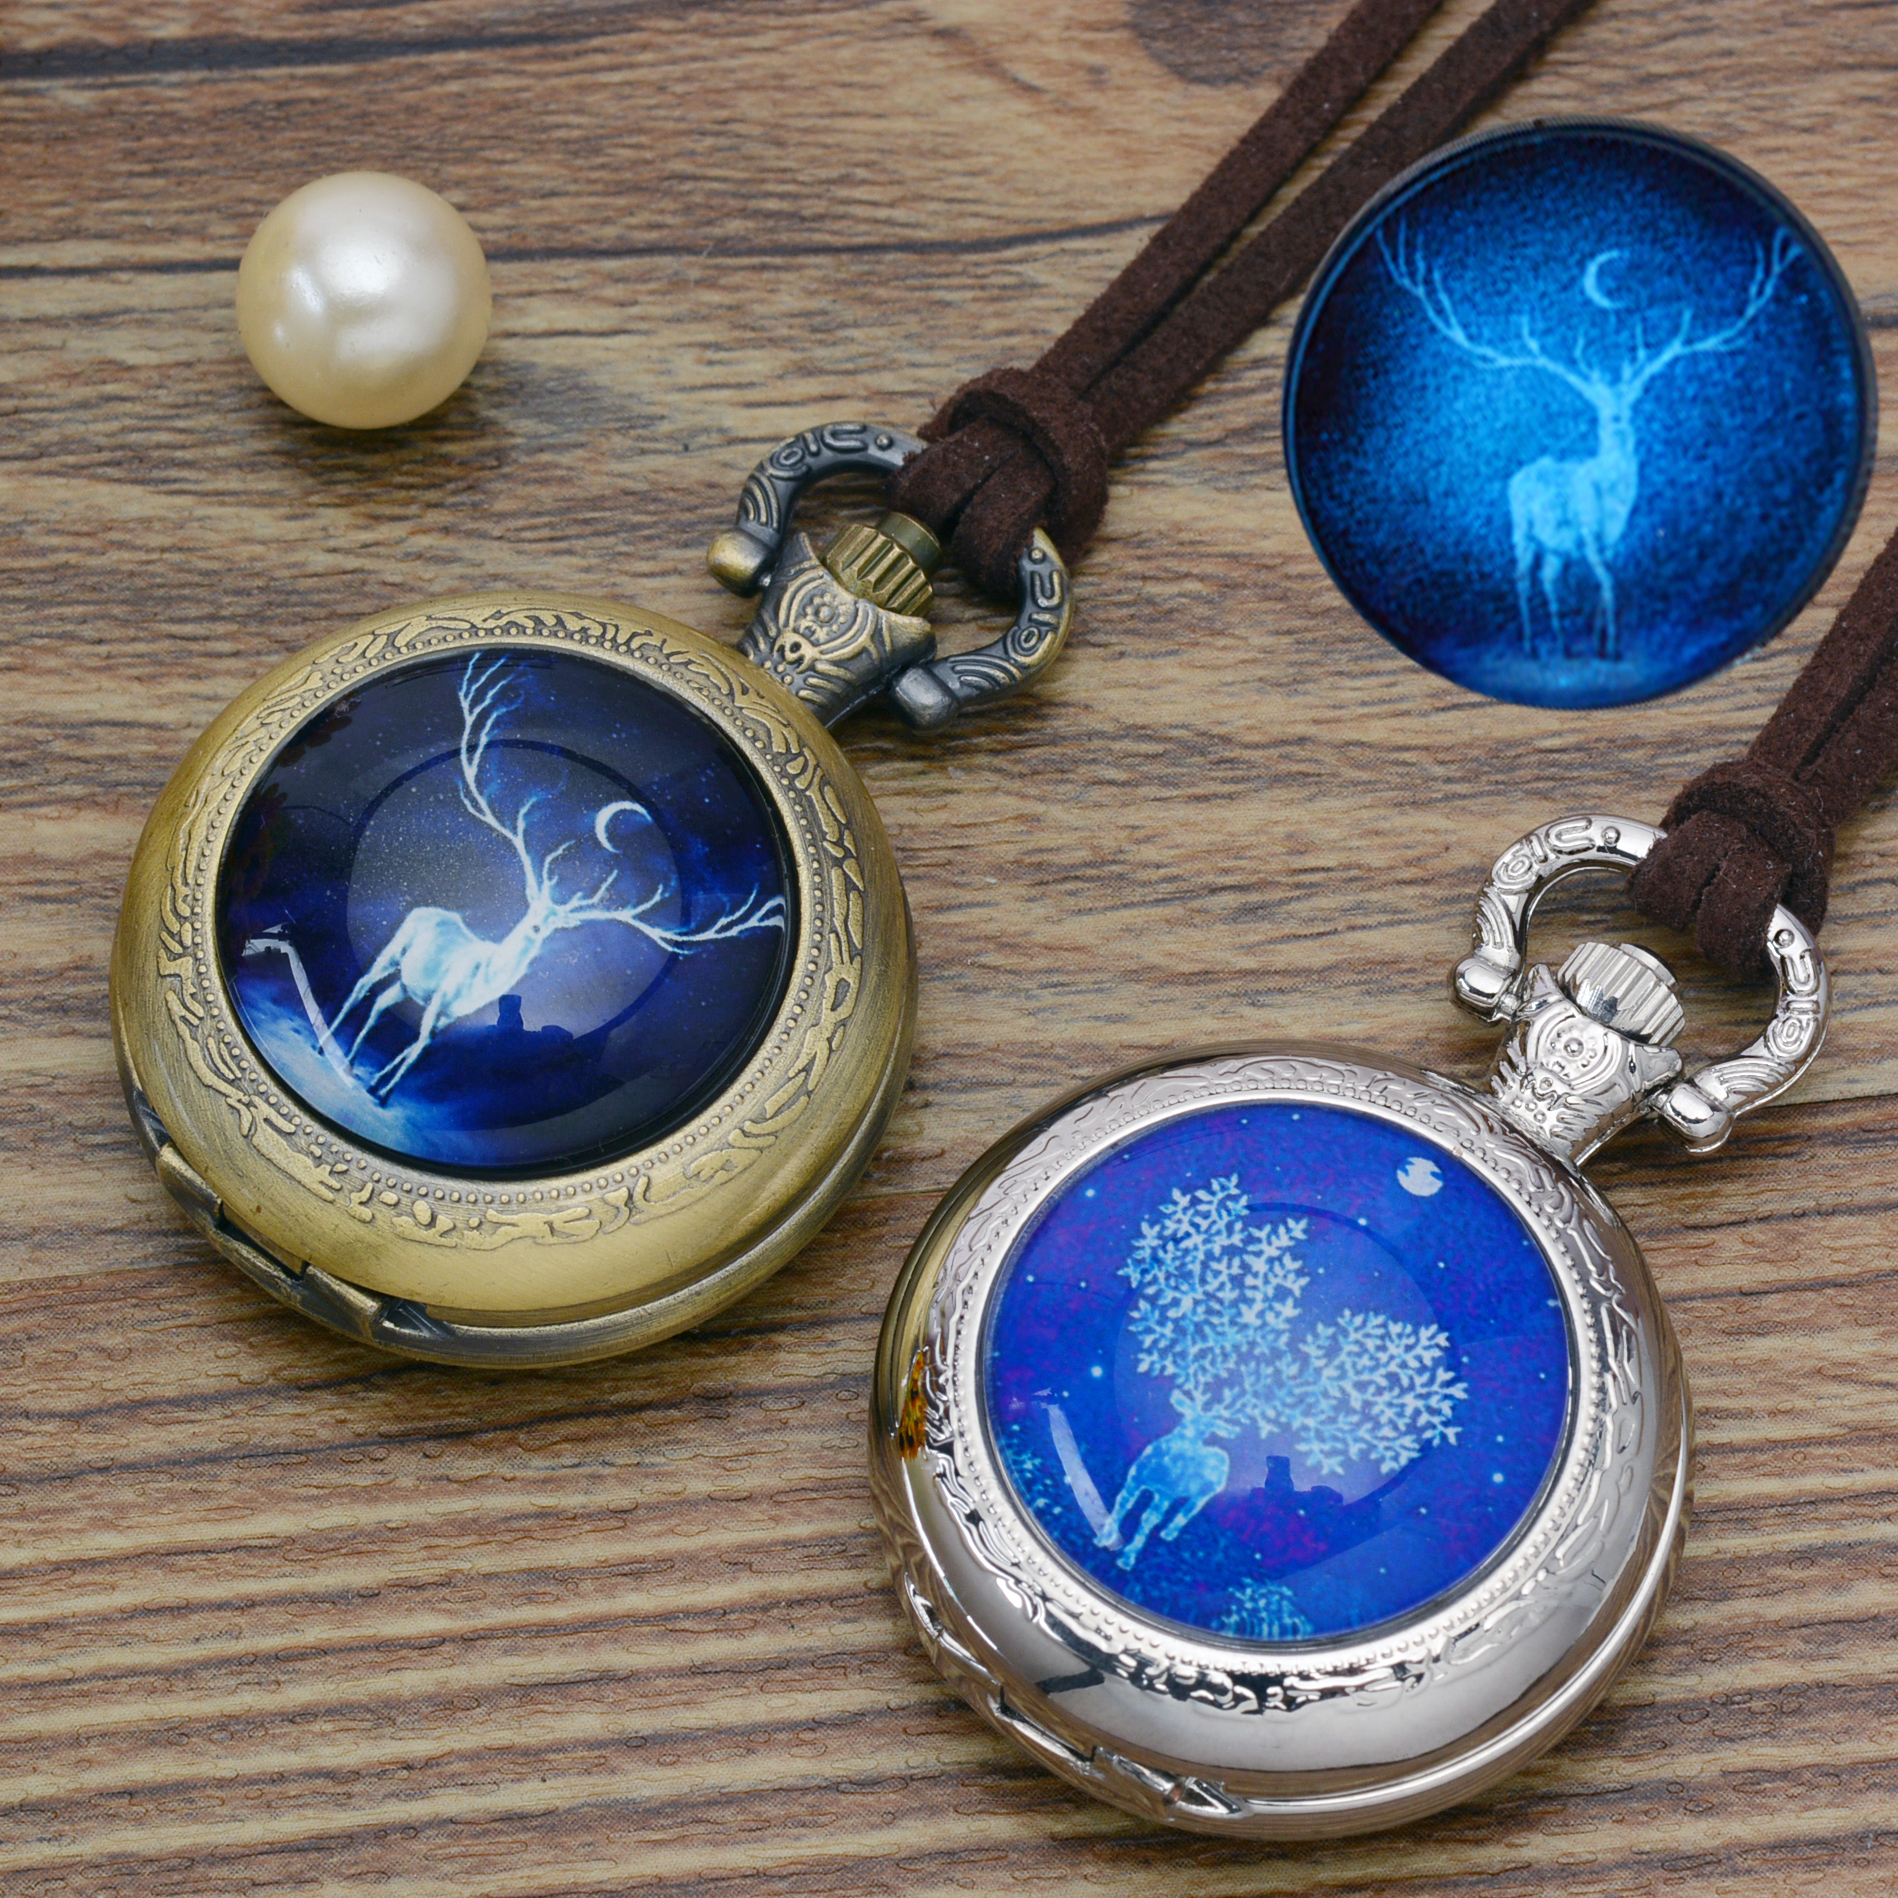 Fashion Luminous Deer Pocket Watch Necklace Woman Men Fob Watches Silver Bronze Round Convex Lens Glass Picture Girl Cute Lady